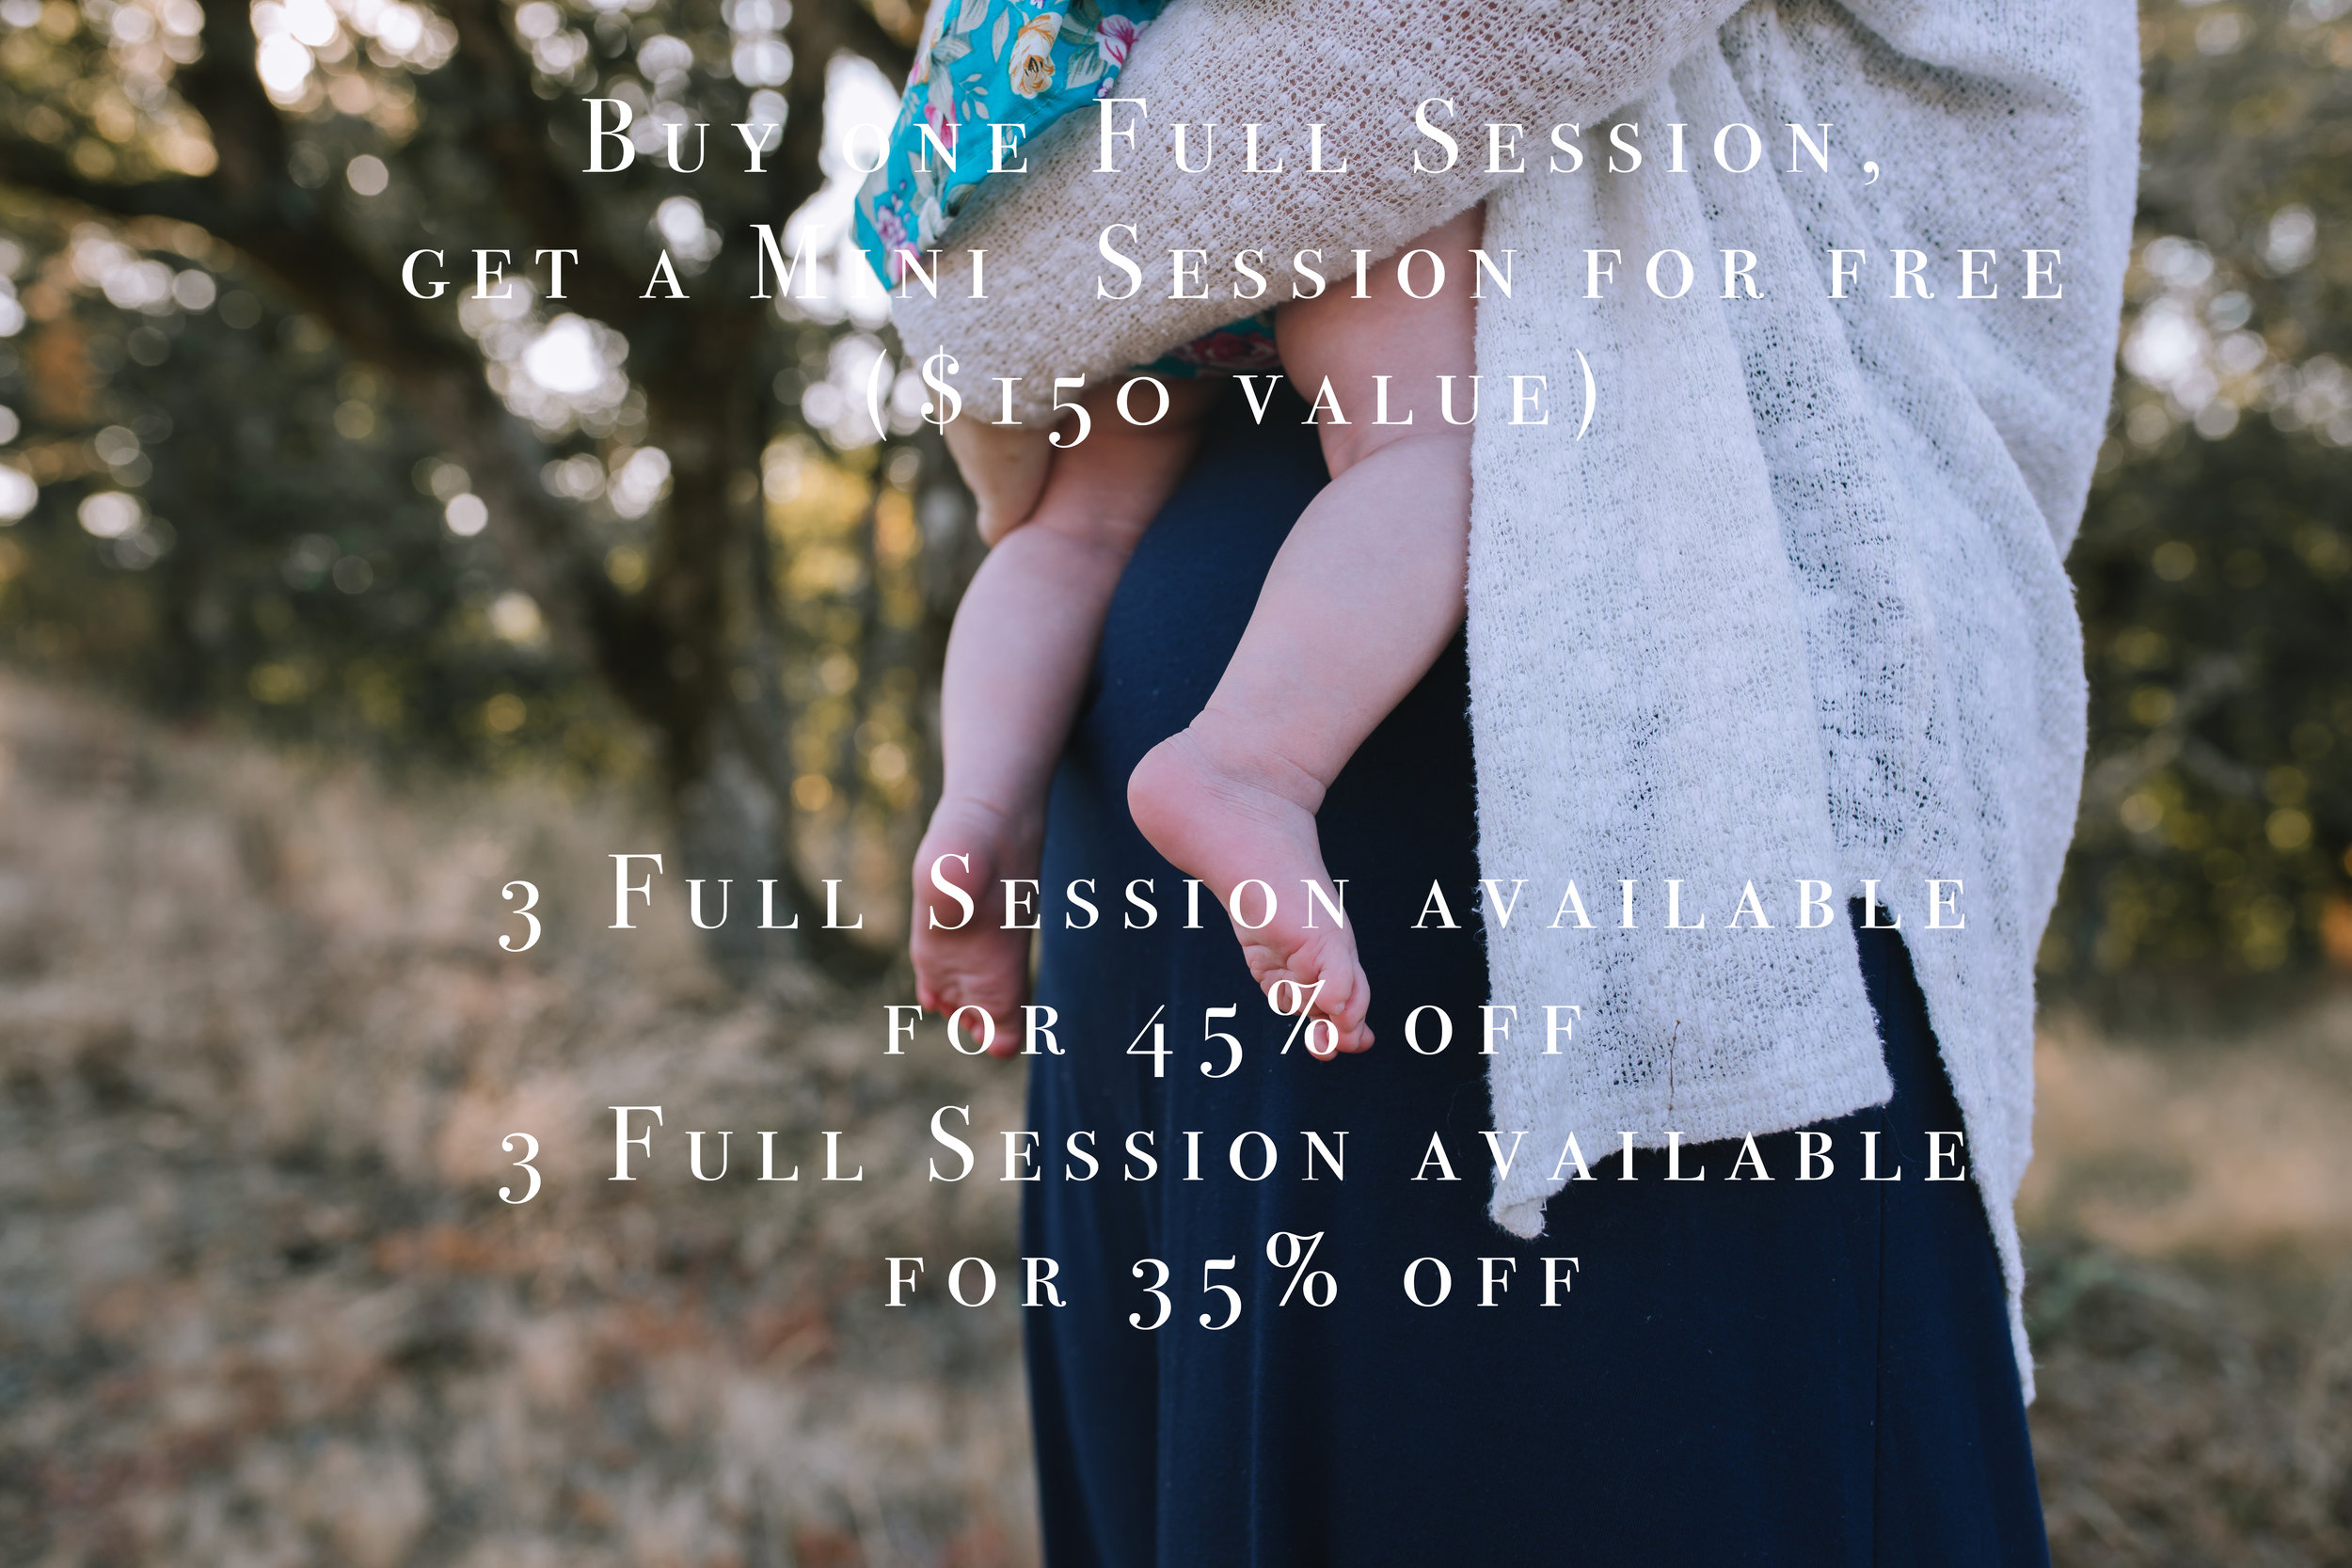 Buy one Full Session, Get a Mini Session Free to keep or gift.  3 Full Sessions 45% off. Once they are booked then 3 more Full Session are available for 35% off.  Full sessions are Lavender Lemonade and Lavender Coconut.  *Some restrictions apply.